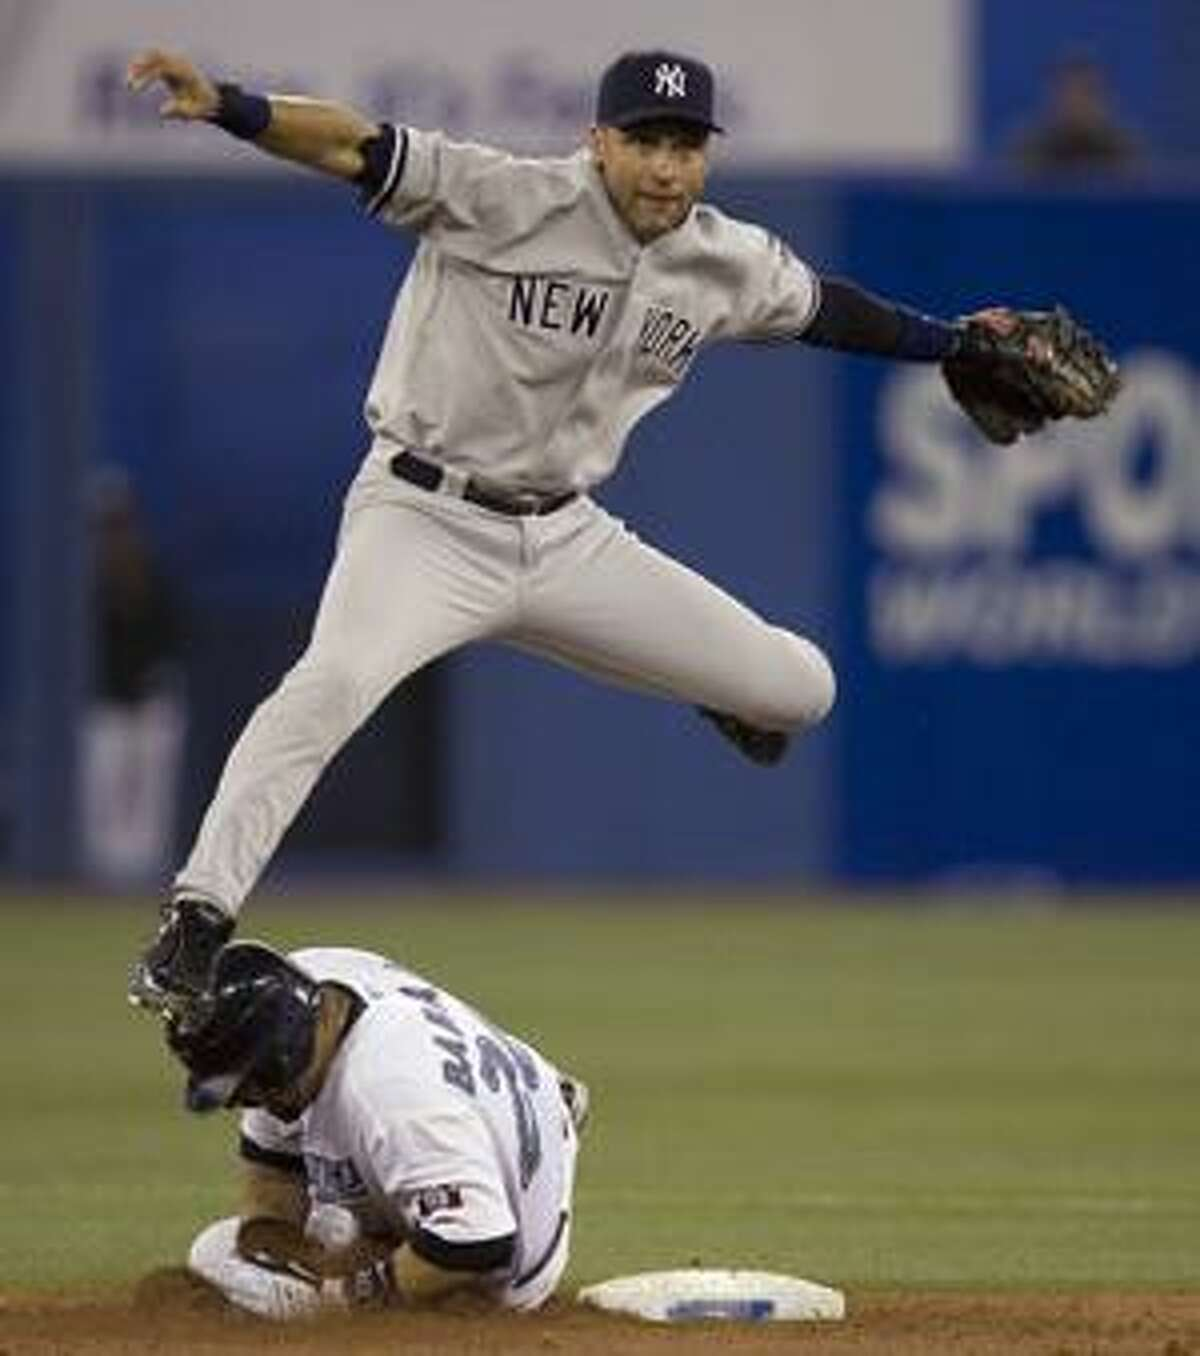 New York Yankees shortstop Derek Jeter leaps over Toronto Blue Jays' Rod Barajas at second base to turn a double play during the fifth inning Tuesday in Toronto. Jose Bautista was out at first.